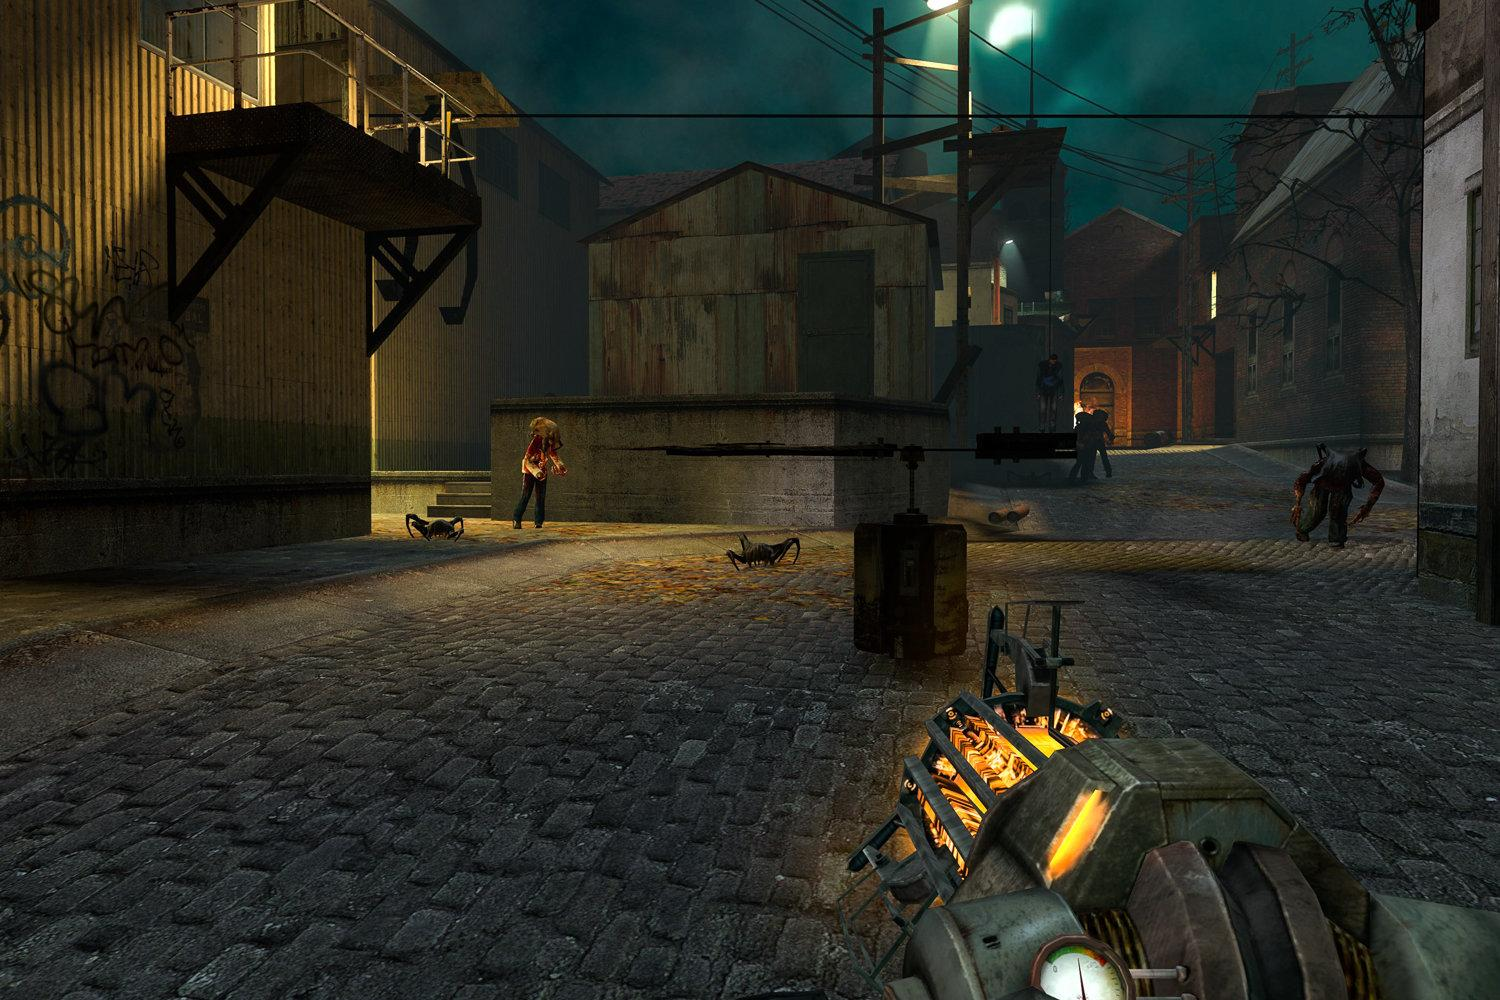 Half-Life 2: Aftermath Mod Includes Beta Content Meant For